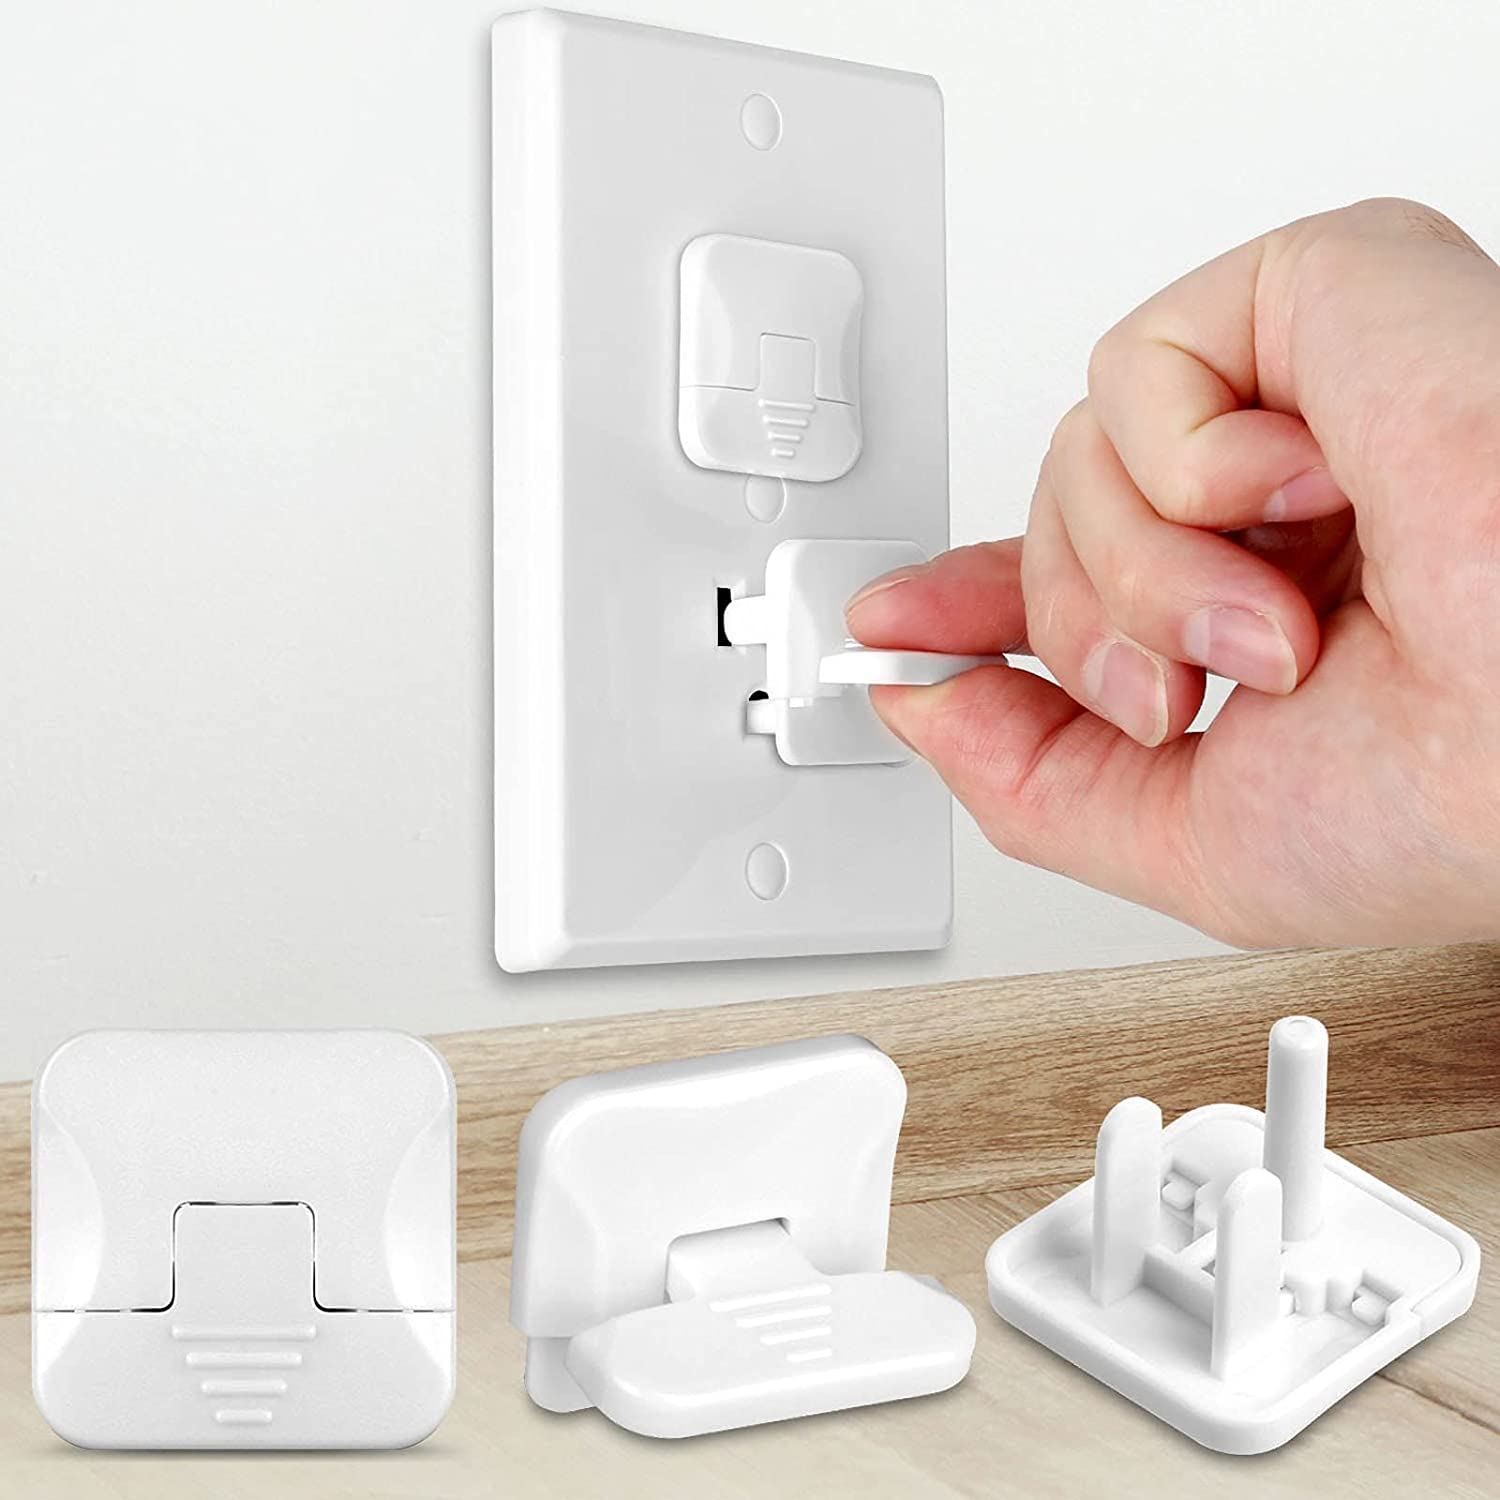 Outlet Covers (45 Pack) with Hidden Pull Handle Baby Proofing Plug Covers 3-Prong Child Safety Socket Covers Electrical Outlet Protectors Kid Proof Outlet Cap